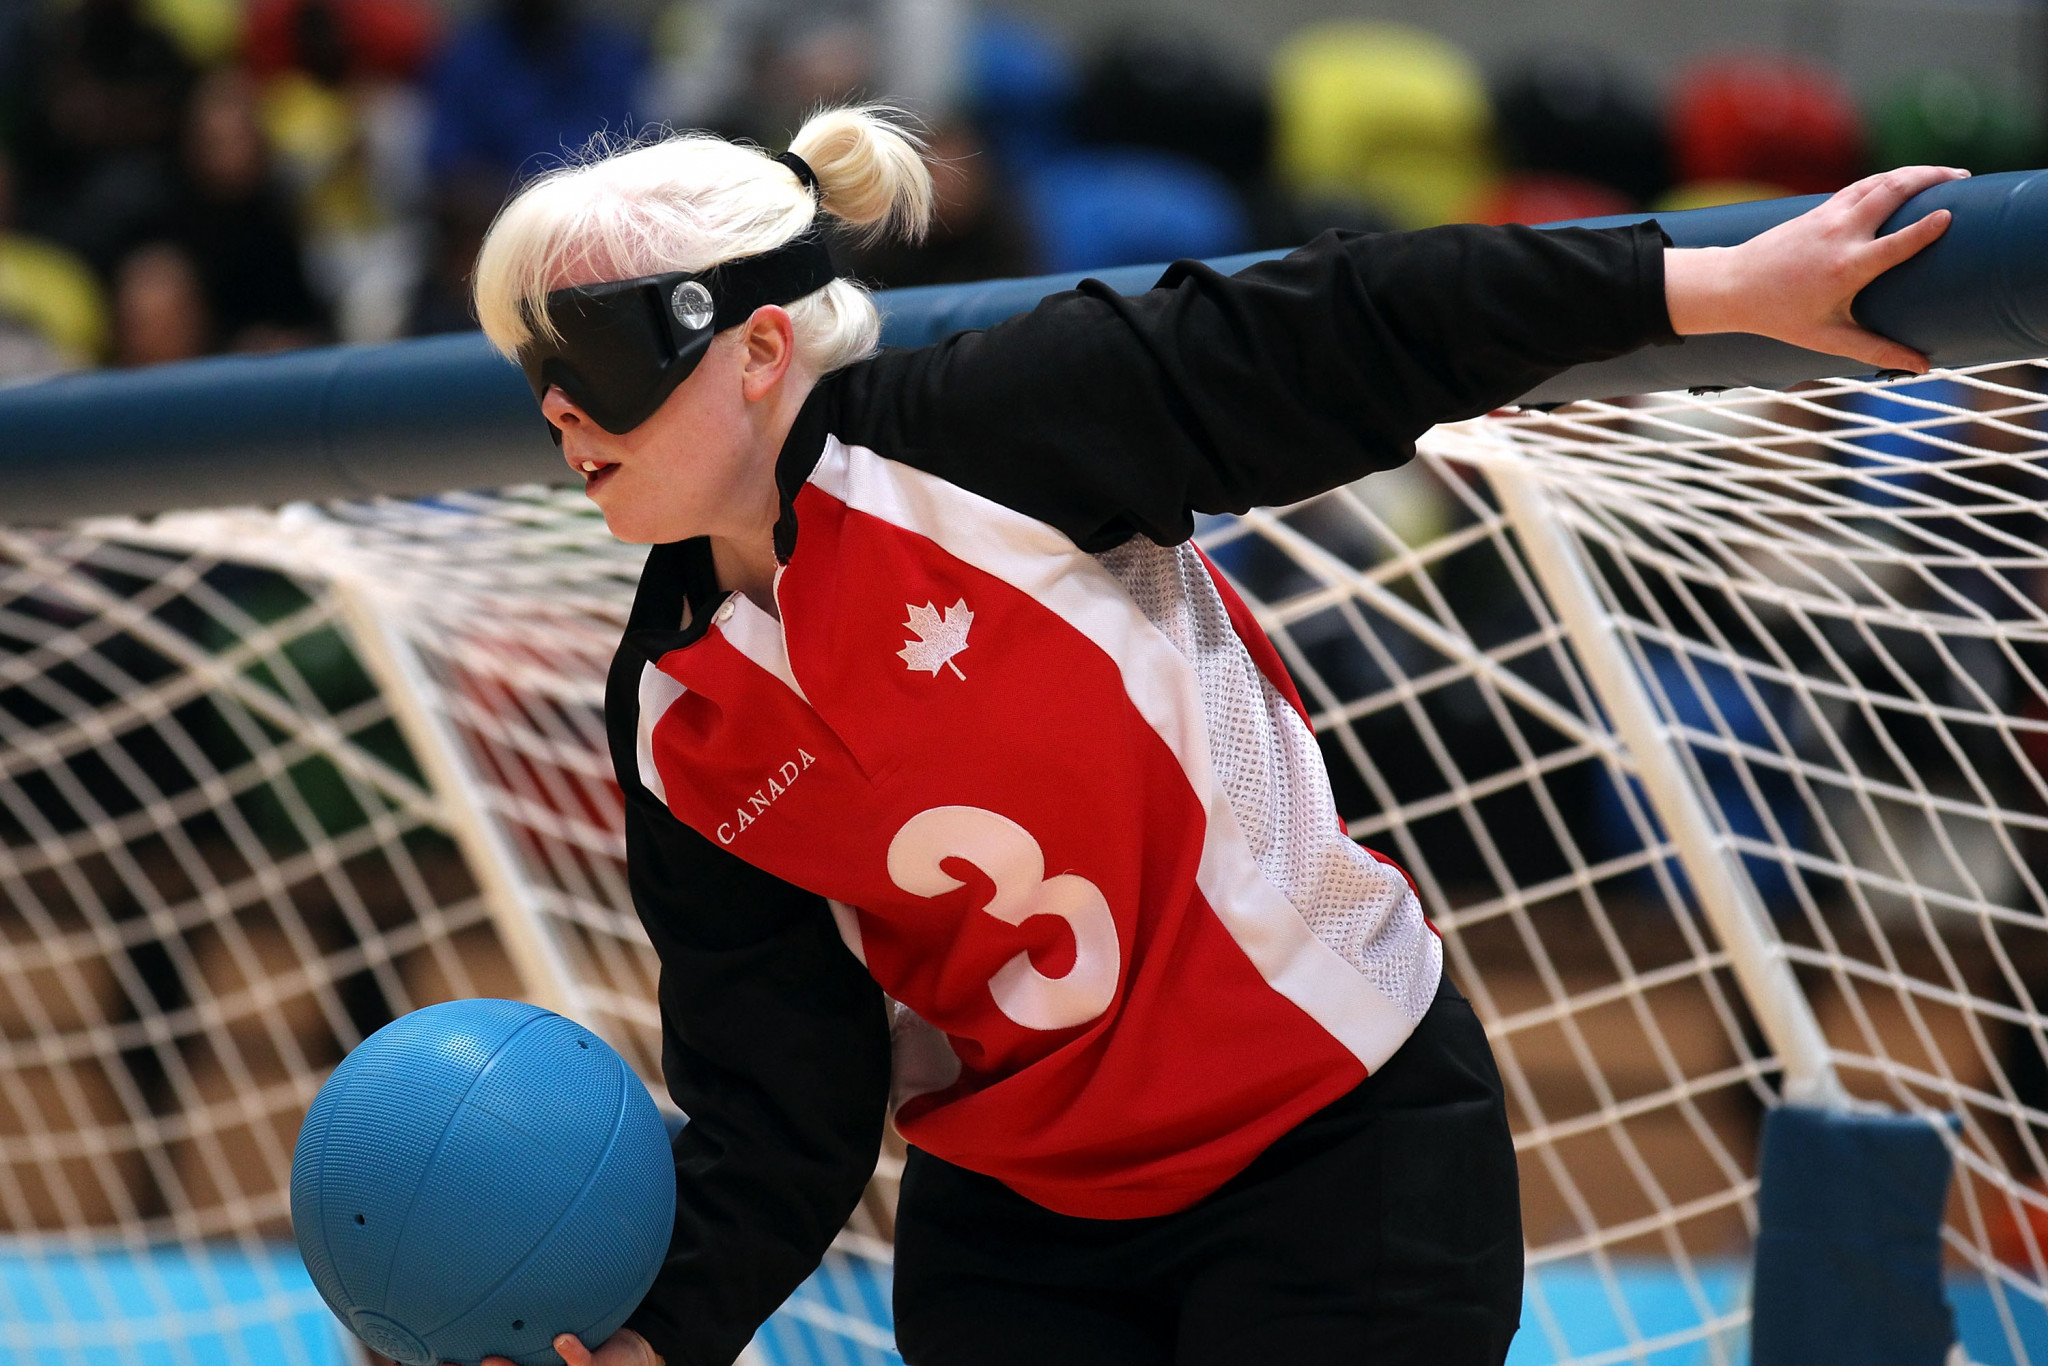 The women's goalball squad at Lima 2019 this month will be led by two-time Paralympian Whitney Bogart, the only returning member from the Toronto 2015 squad ©Getty Images